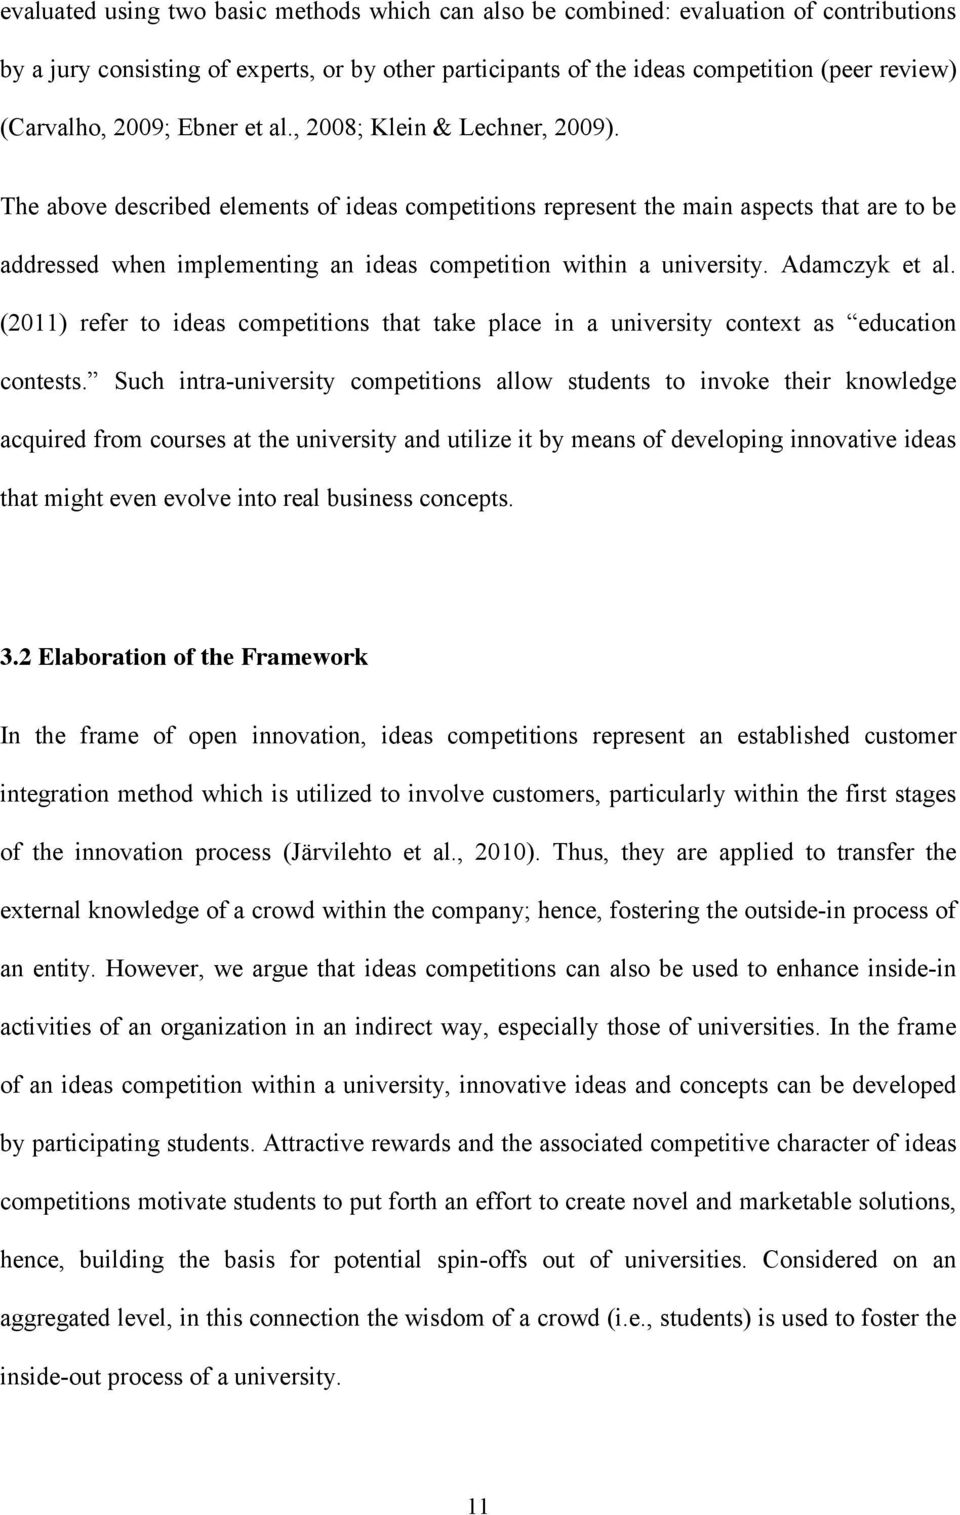 The above described elements of ideas competitions represent the main aspects that are to be addressed when implementing an ideas competition within a university. Adamczyk et al.